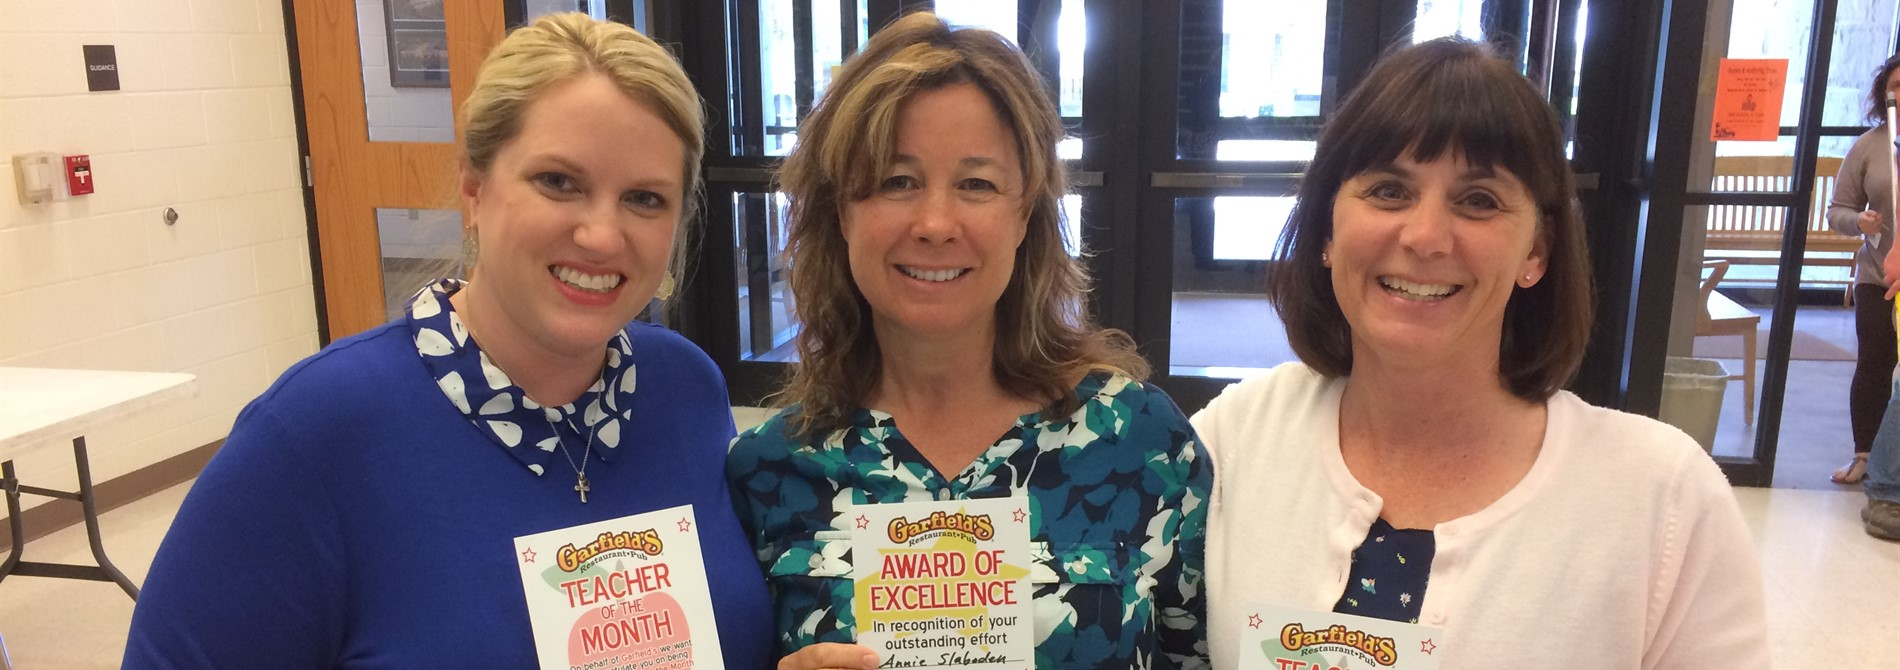 April Teachers of the Month - Mrs. Heil, Mrs. Slaboden & Mrs. Kozlowski